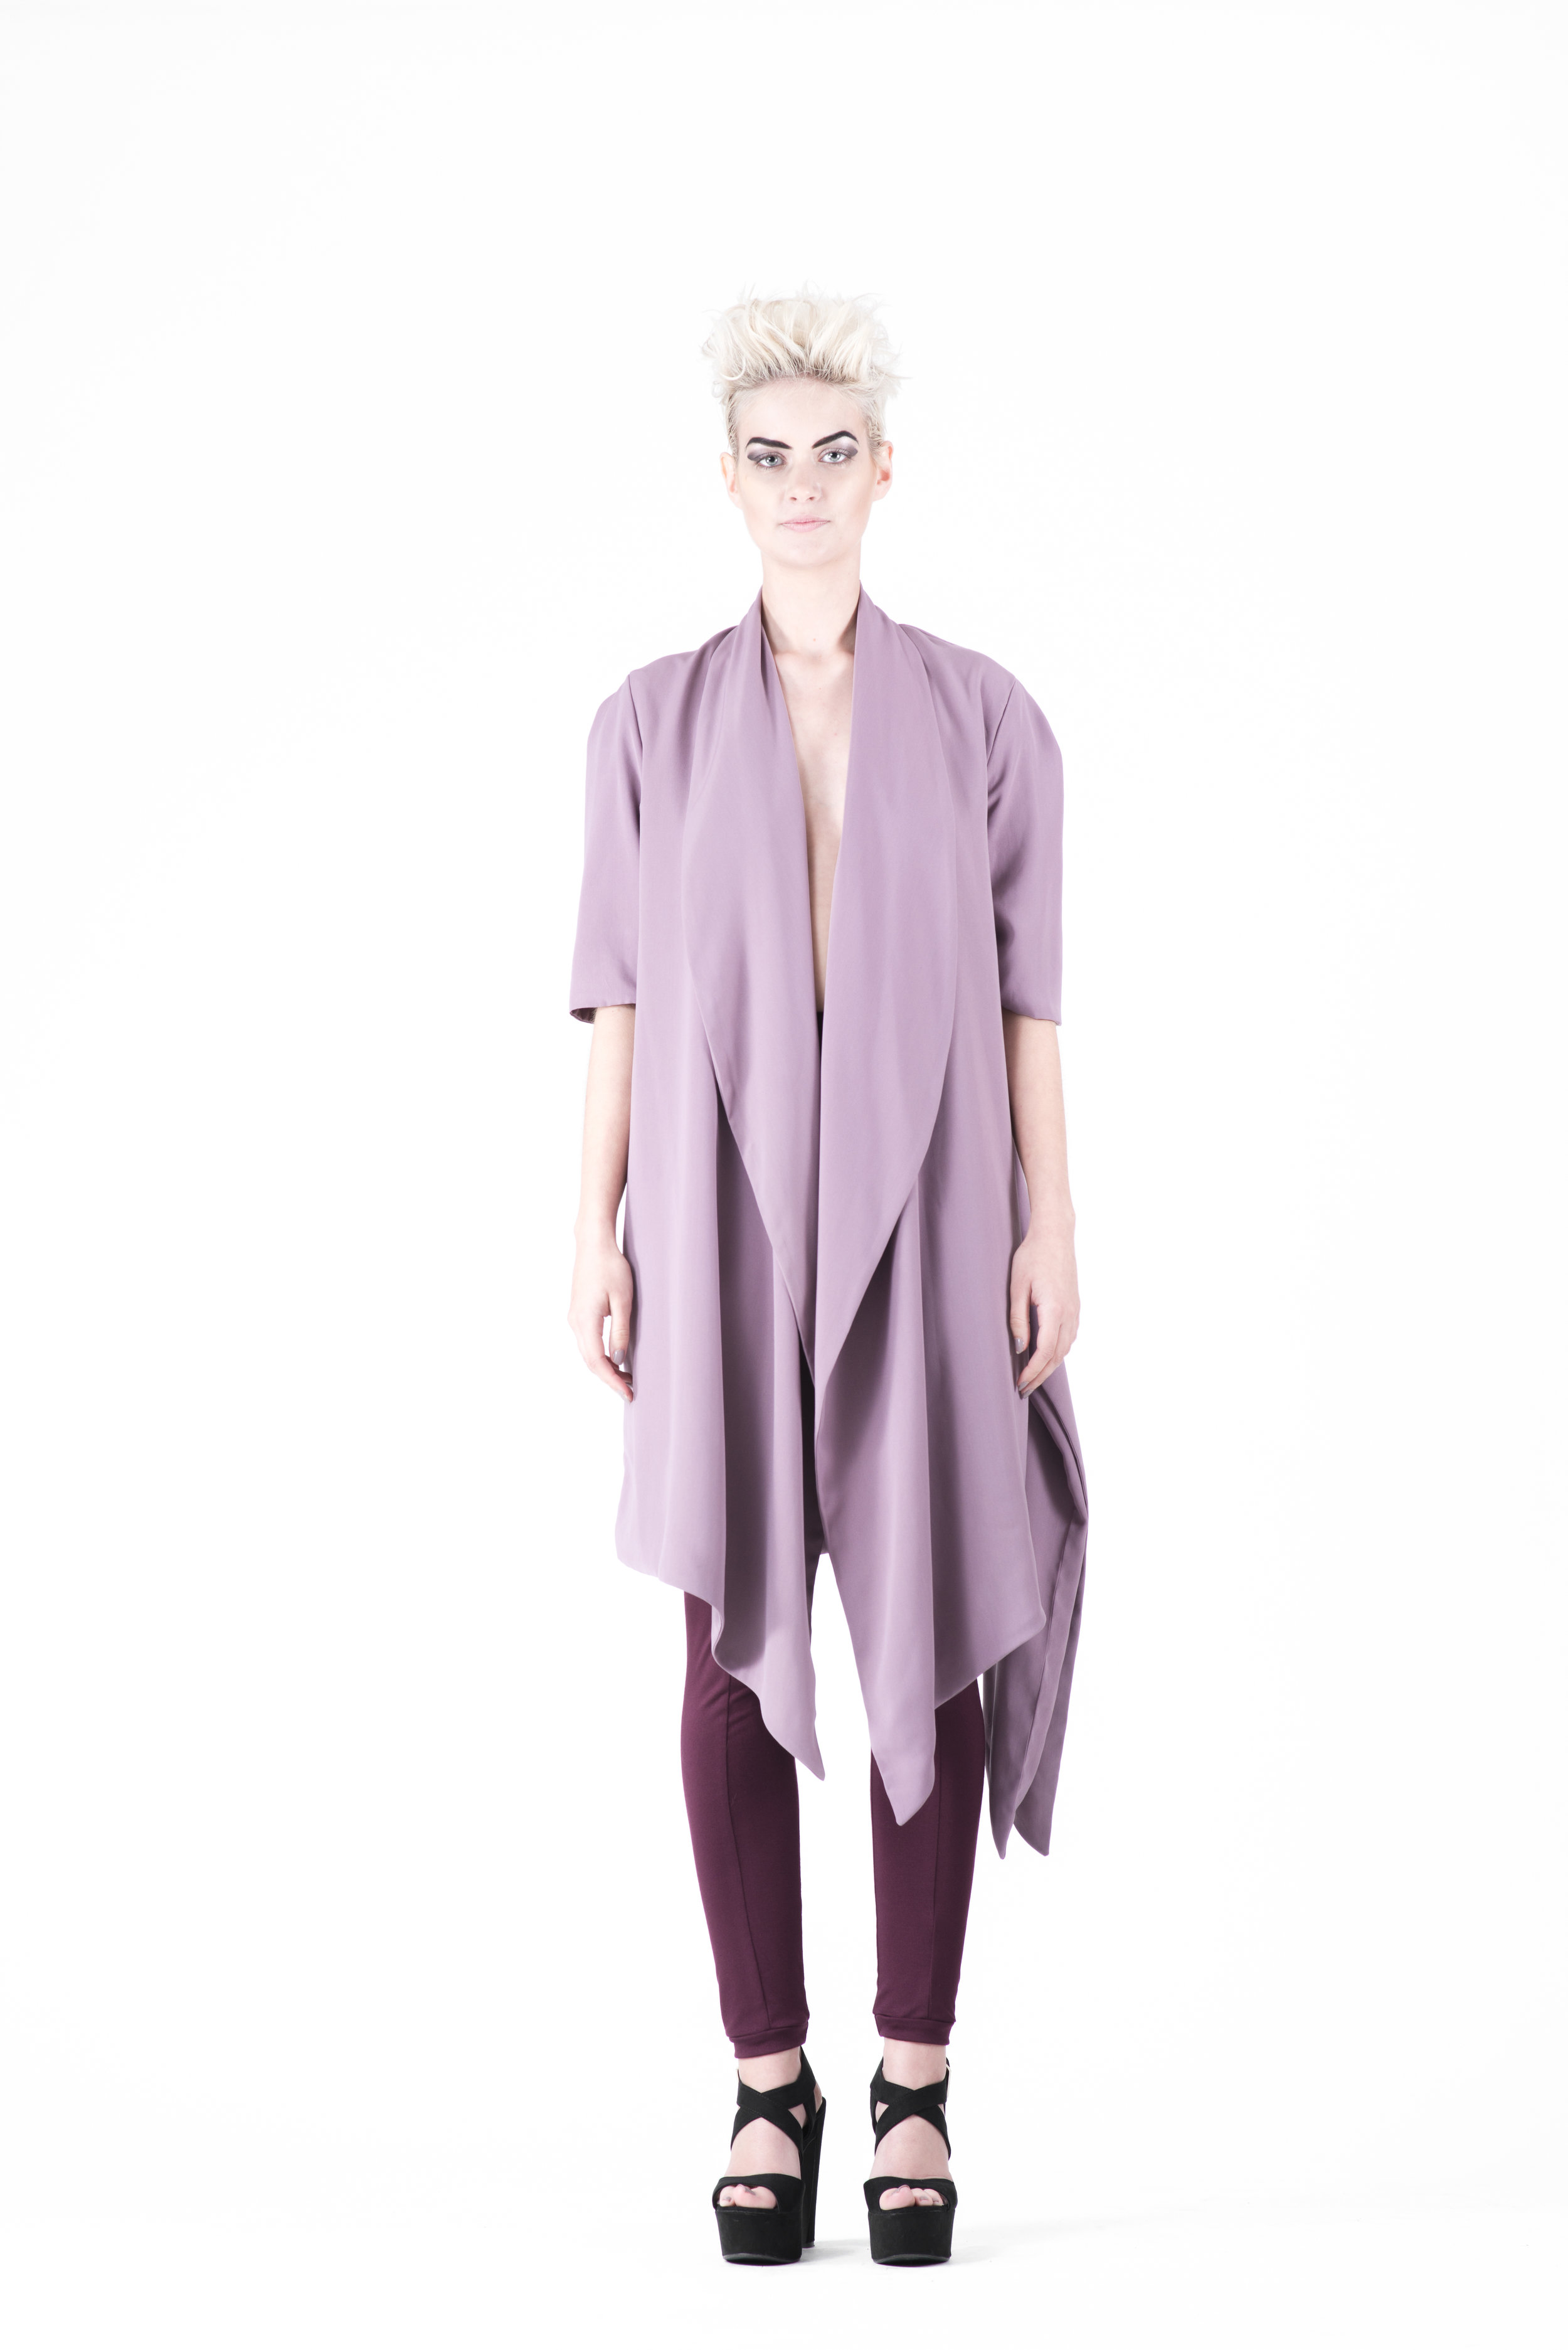 zaramia-ava-zaramiaava-leeds-fashion-designer-ethical-sustainable-tailored-minimalist-maika-mauve-dress-jacket-dress-versatile-rei-plum-legginges-drape-cowl-styling-womenswear-models-photoshoot-65